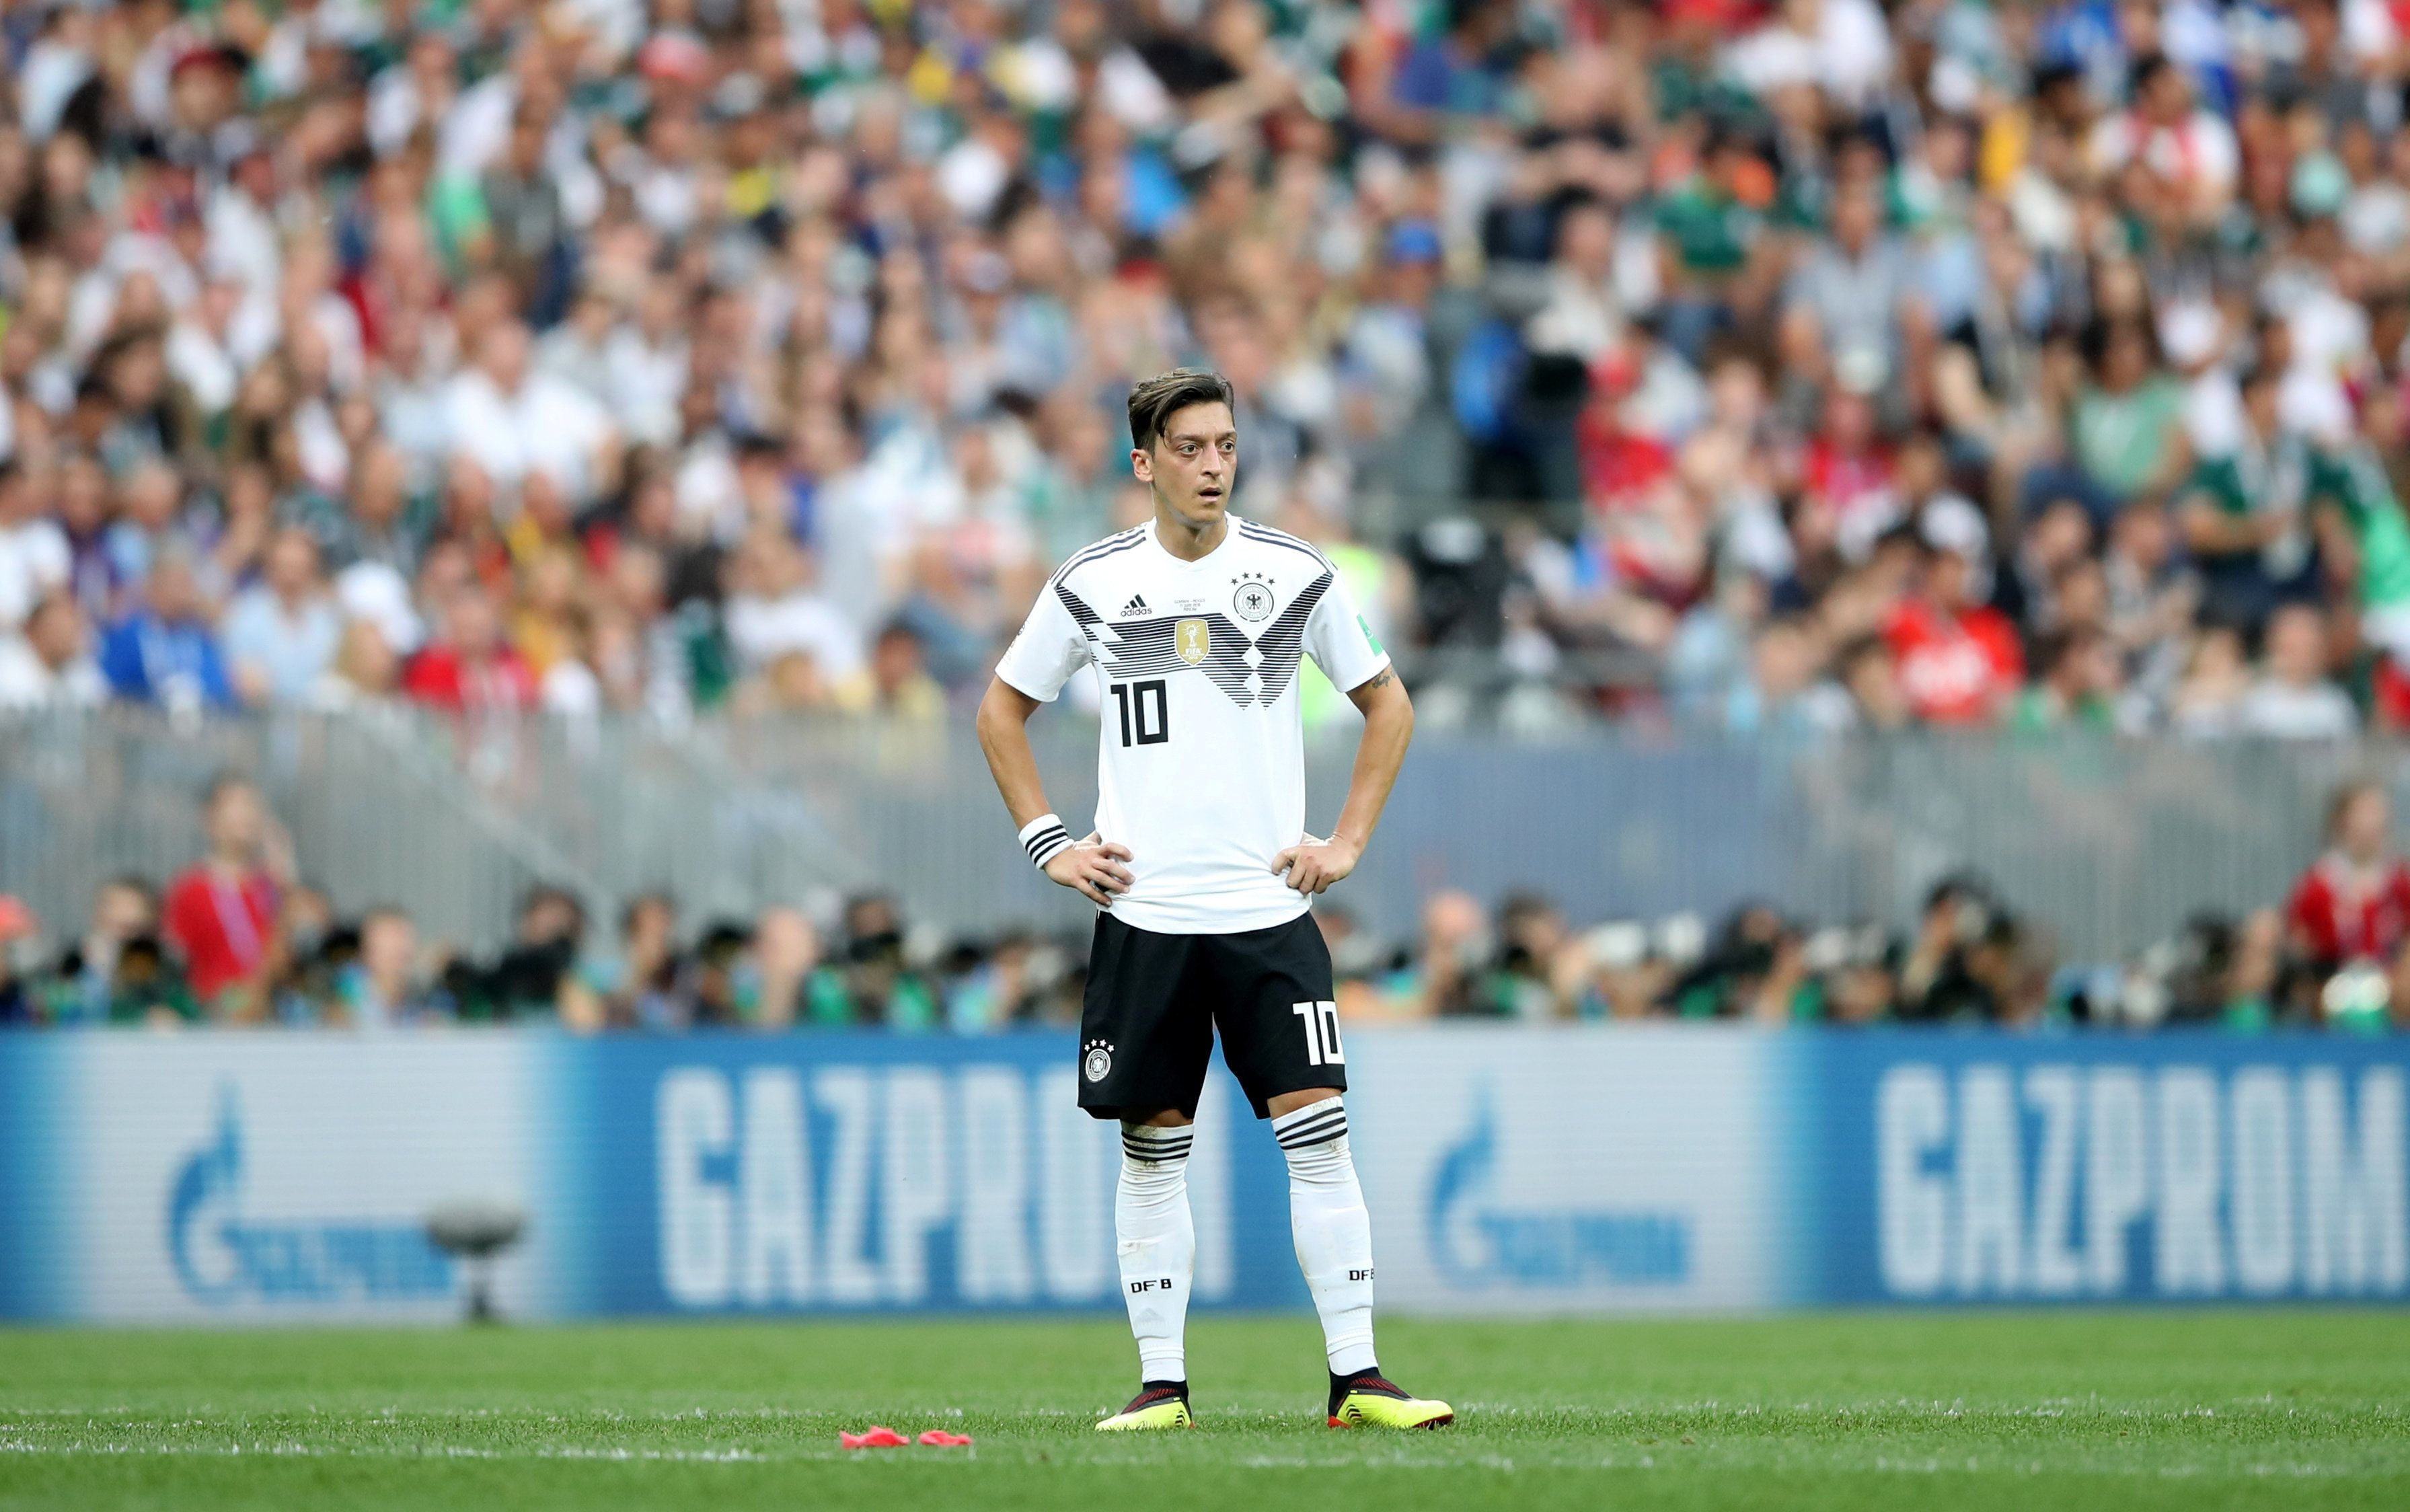 Soccer Football - World Cup - Group F - Germany vs Mexico - Luzhniki Stadium, Moscow, Russia - June 17, 2018   Germany's Mesut Ozil looks on during the match    REUTERS/Carl Recine